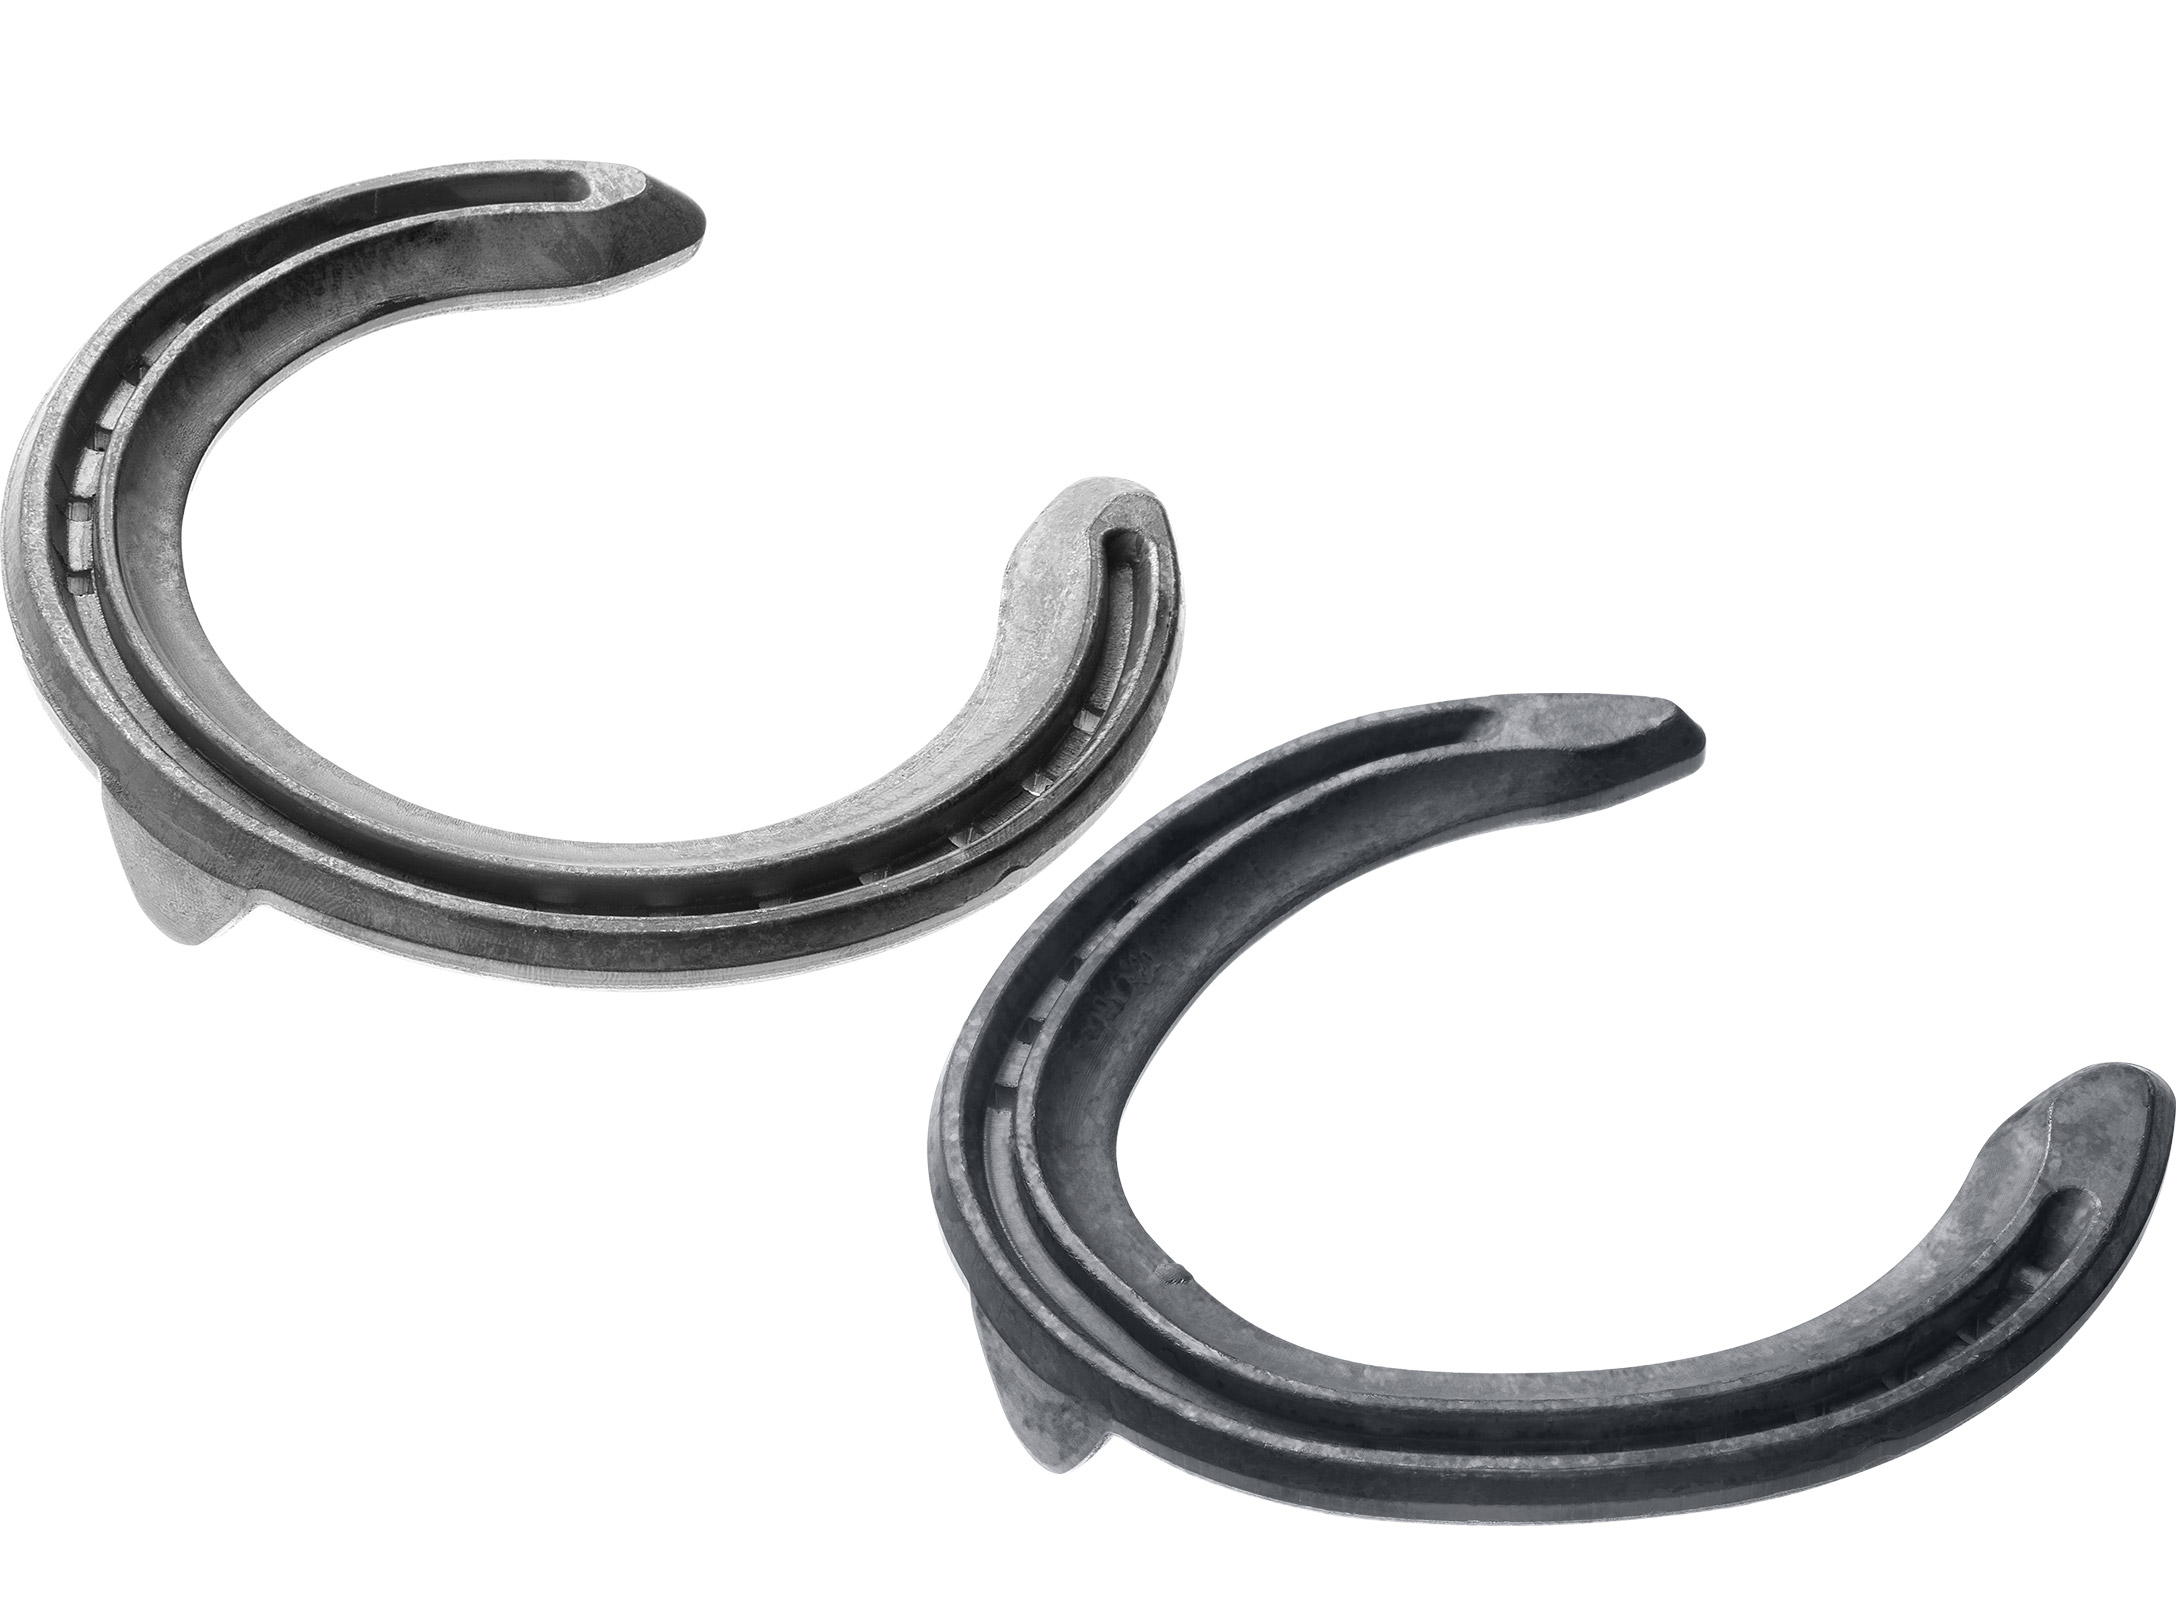 St. Croix Concorde Extra Steel horseshoes, front and hind, bottom side view